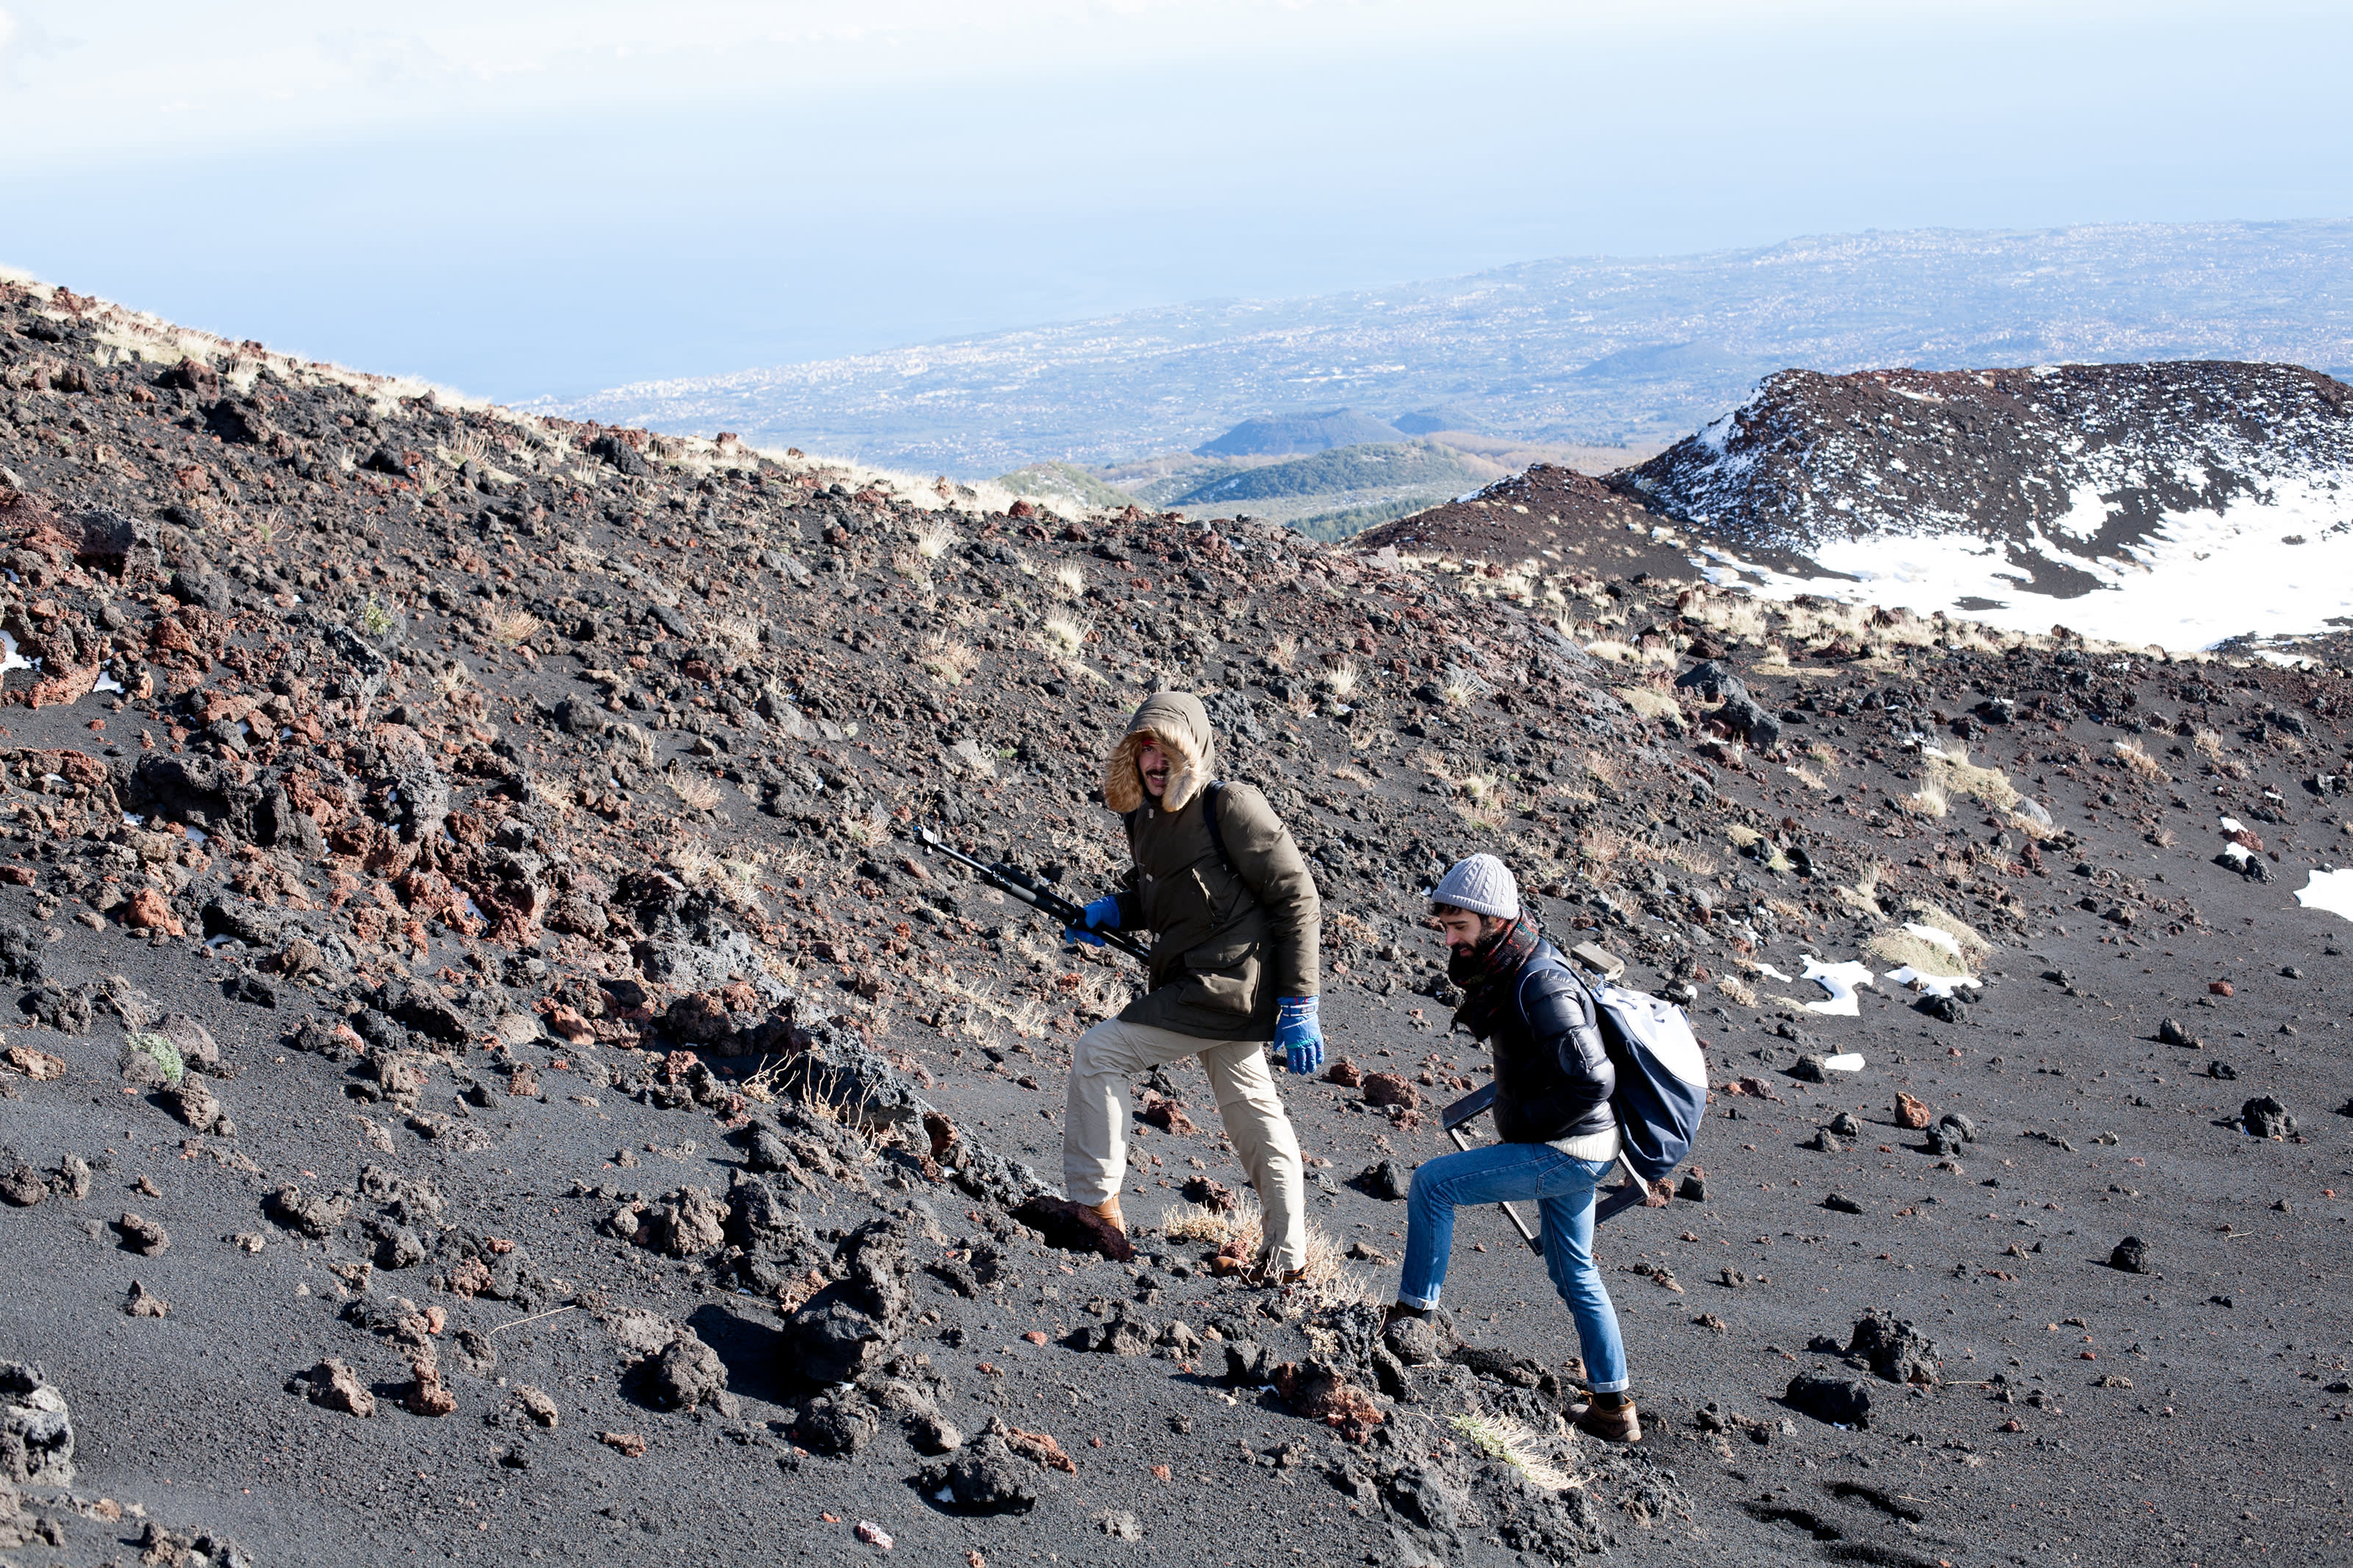 Simone Farresin and Andrea Trimarchi explore the Etna landscape.